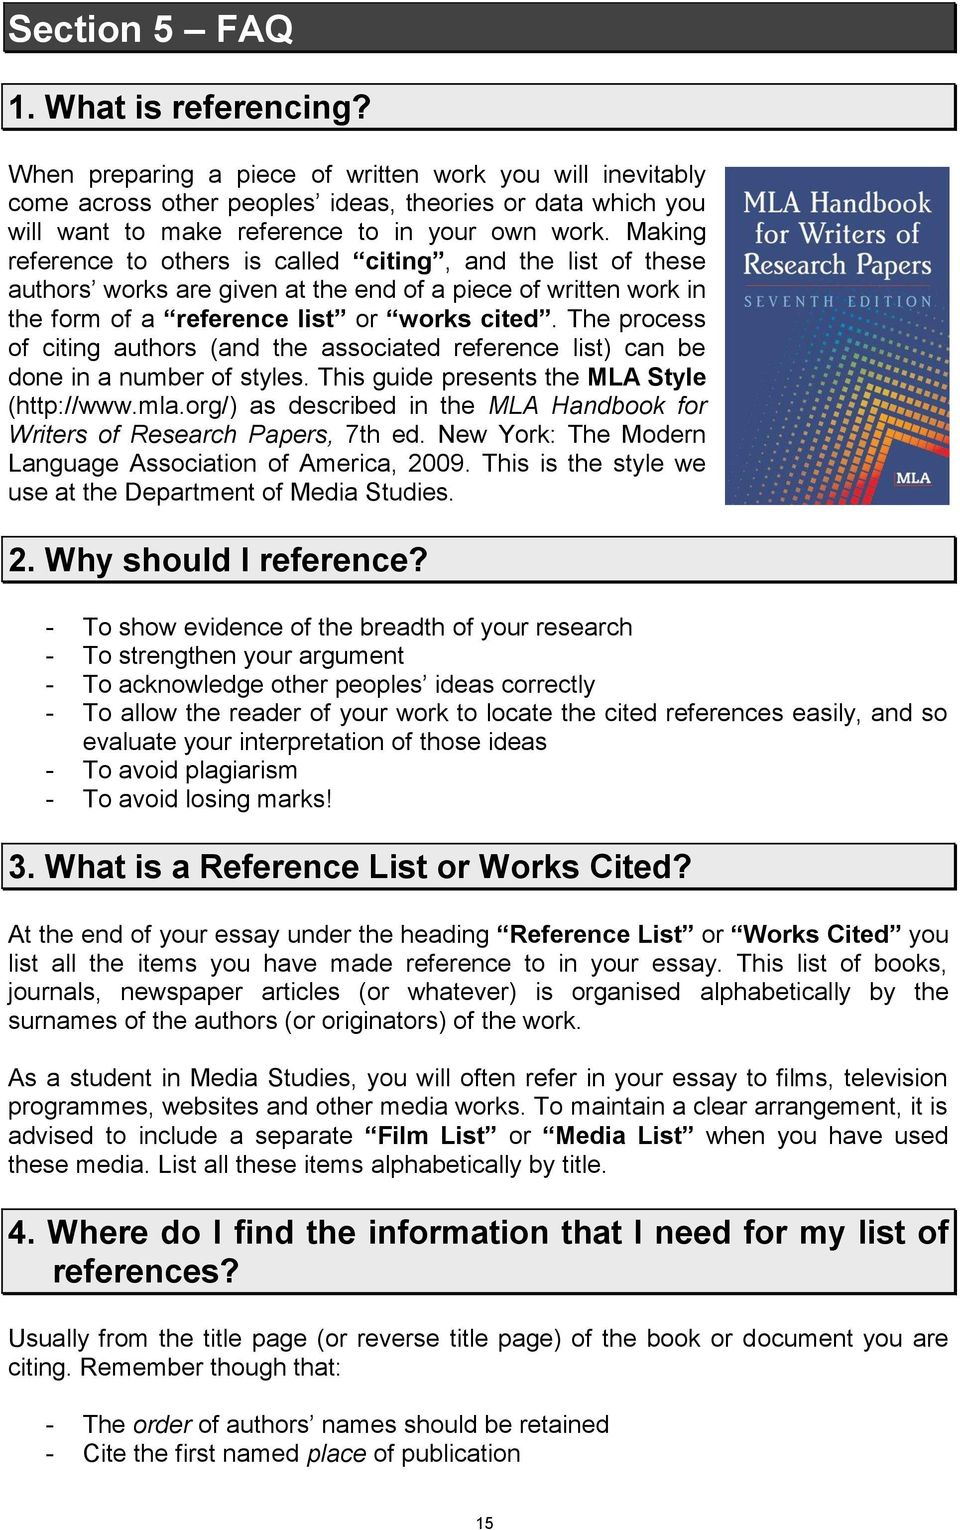 mla referencing guide pdf making reference to others is called citing and the list of these authors works are